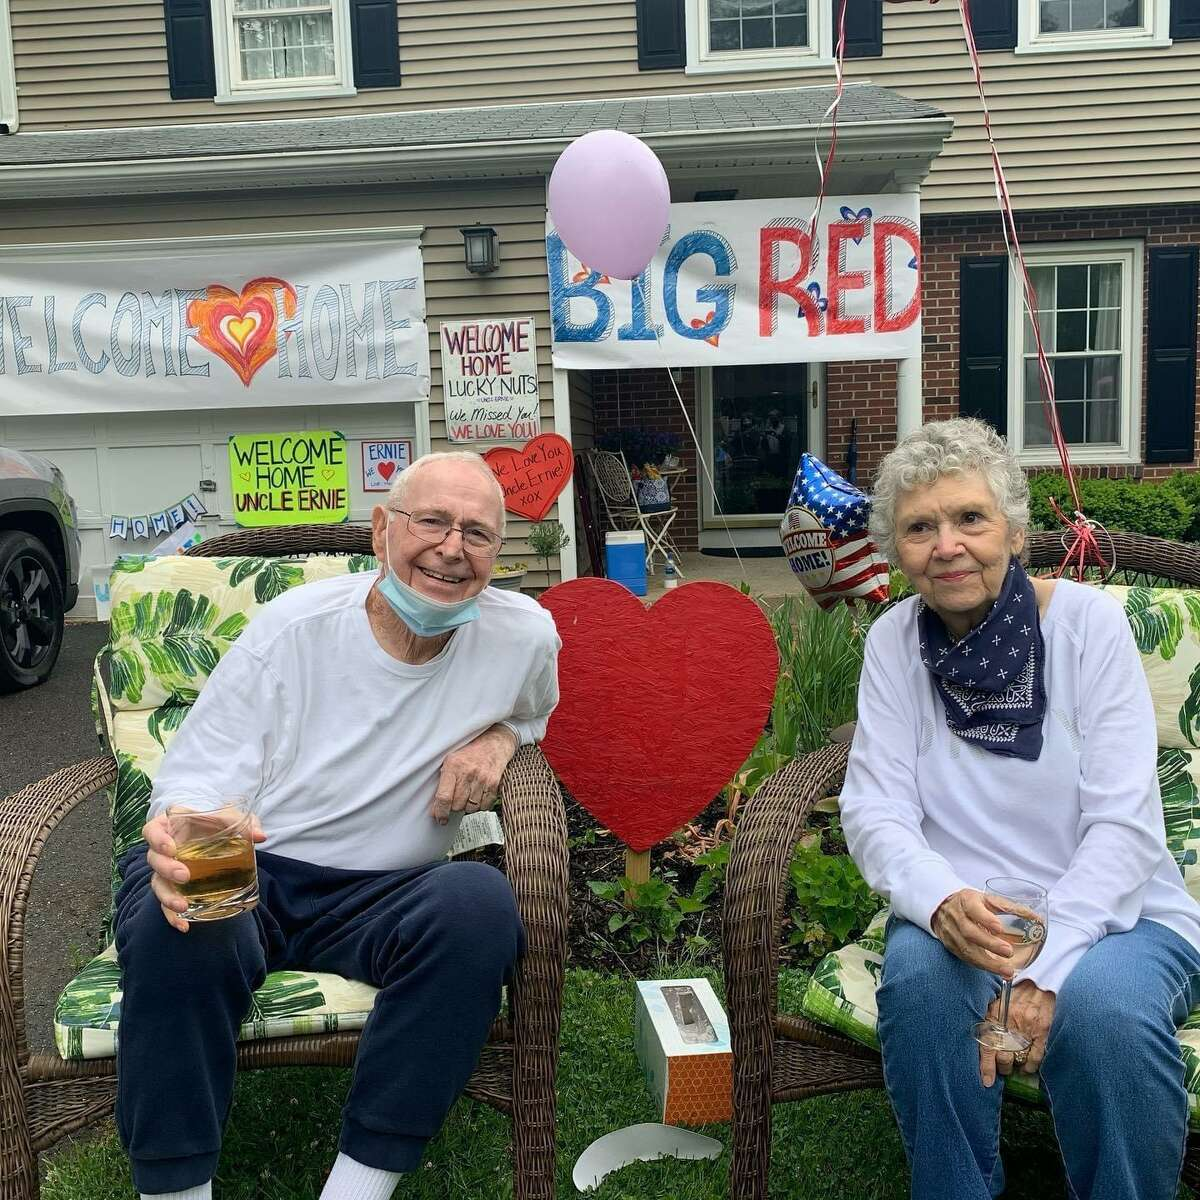 Ernie Oliver and his wife Penny celebrate Ernie's return home on Memorial Day after being hospitalized for coronavirus. Ernie Oliver, the father of Albertus Magnus men's basketball coach Mitch Oliver, was in a coma for 12 days before recovering.